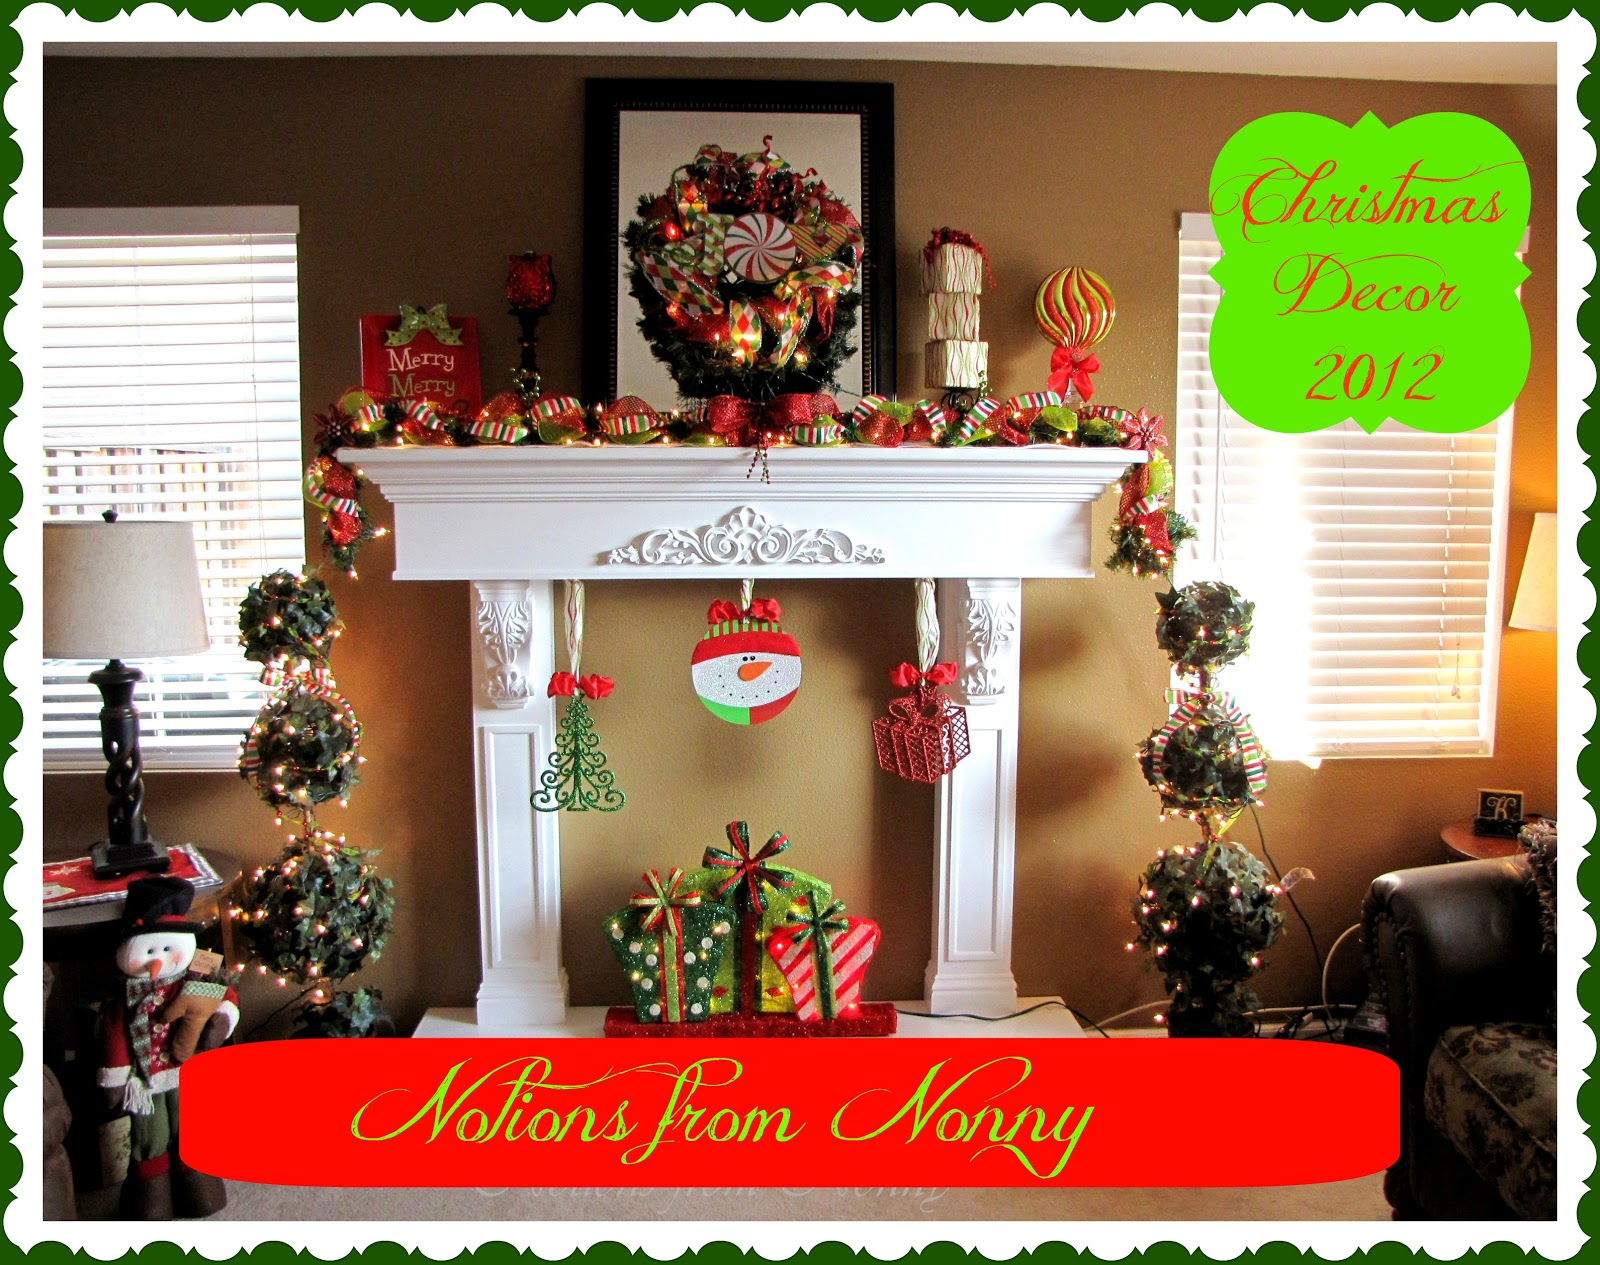 http://www.notionsfromnonny.com/2012/12/christmas-decor-2012.html